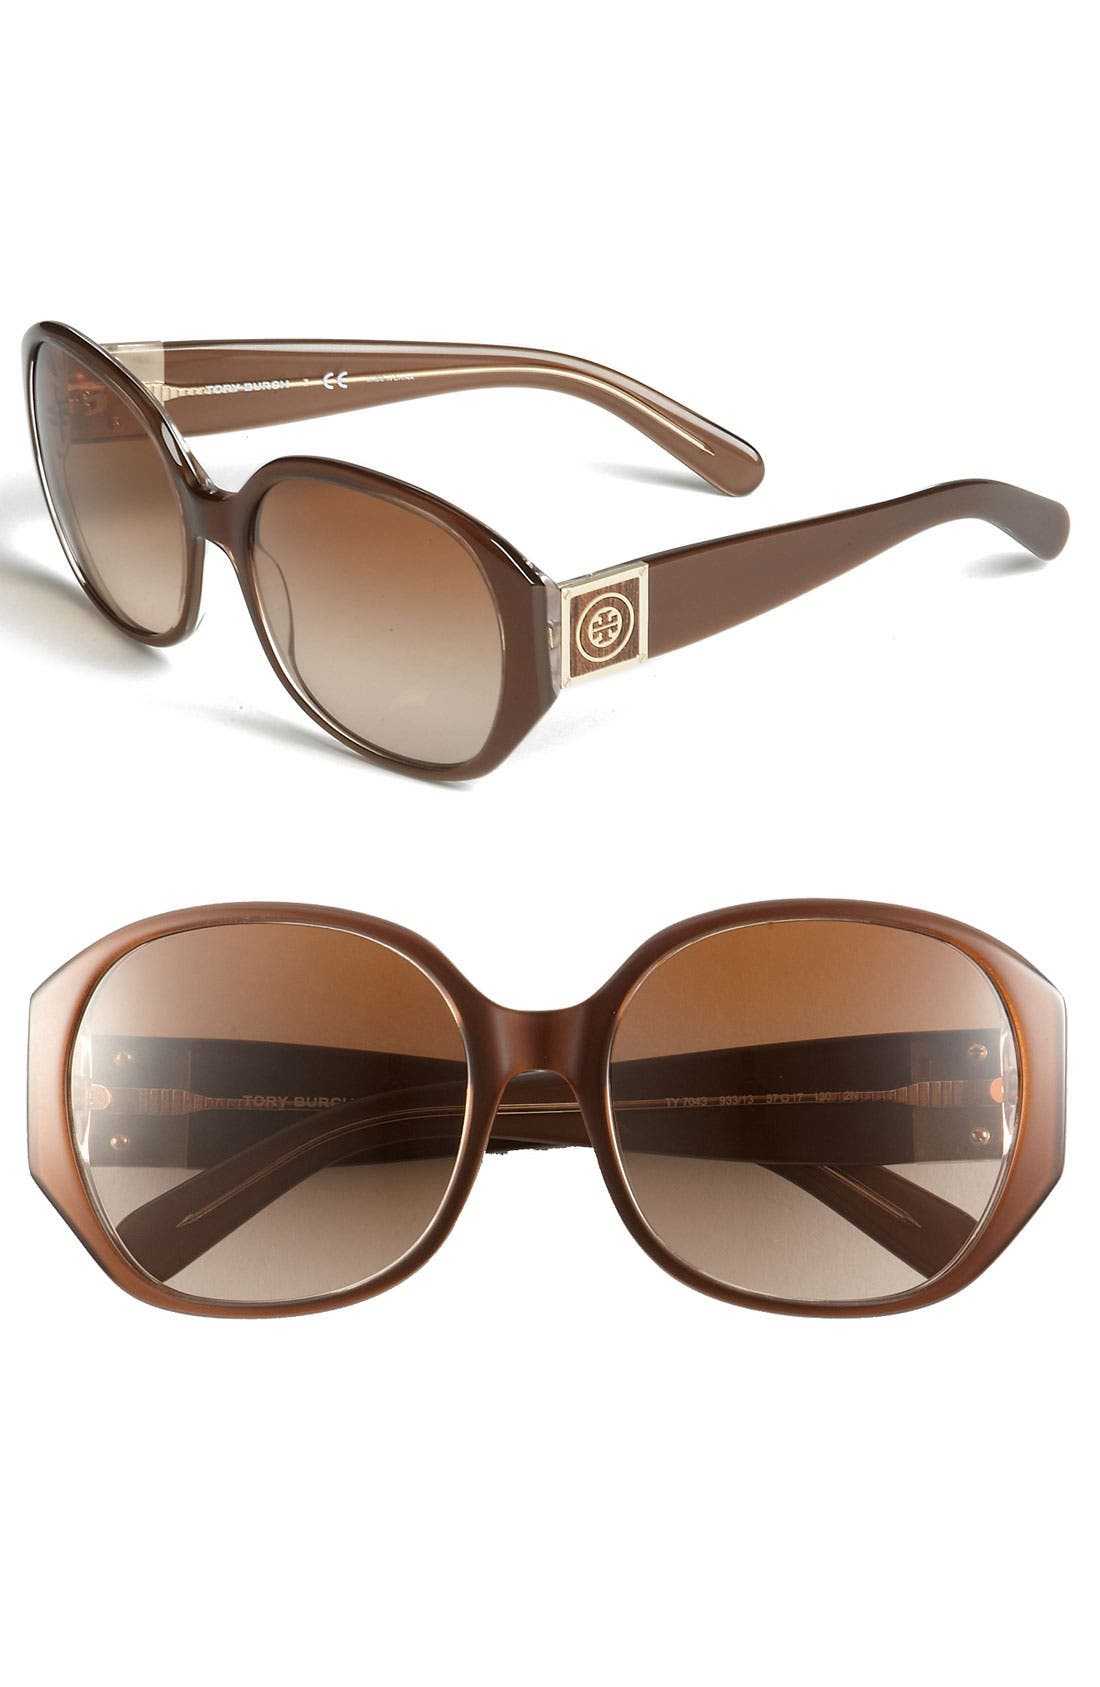 Alternate Image 1 Selected - Tory Burch 57mm Square Sunglasses